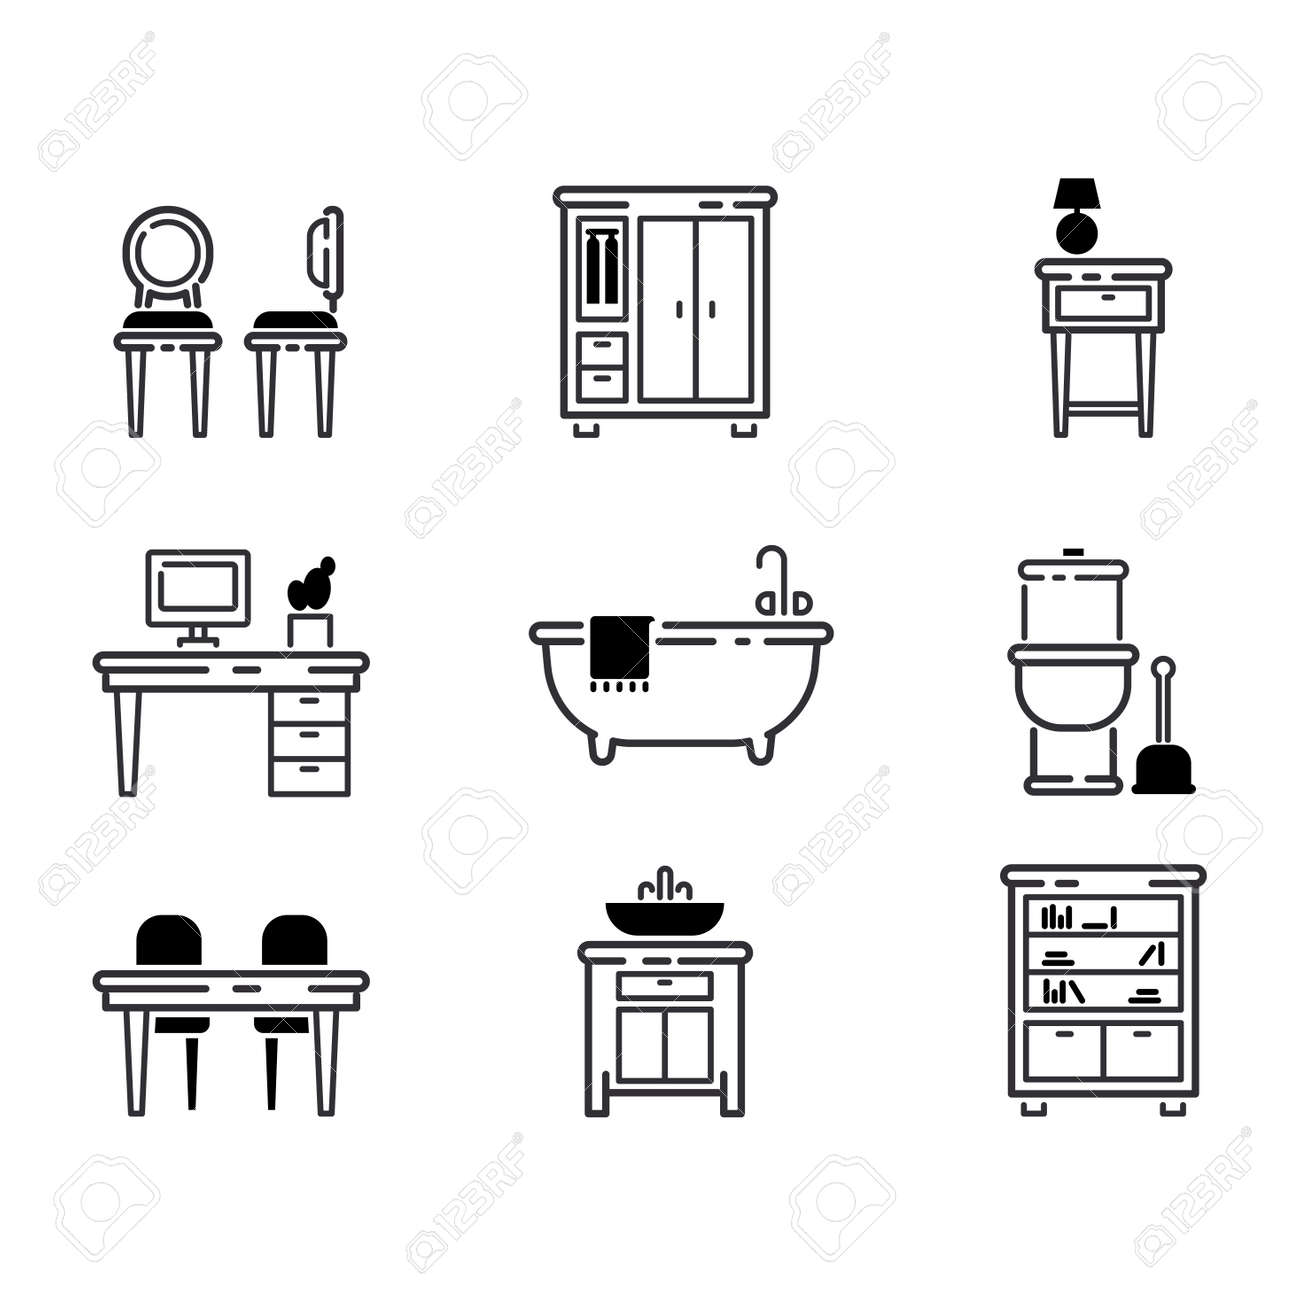 Beau Furniture And Home Decor Icon Set Vector Illustration. Indoor Cabinet  Interior Room Library, Office